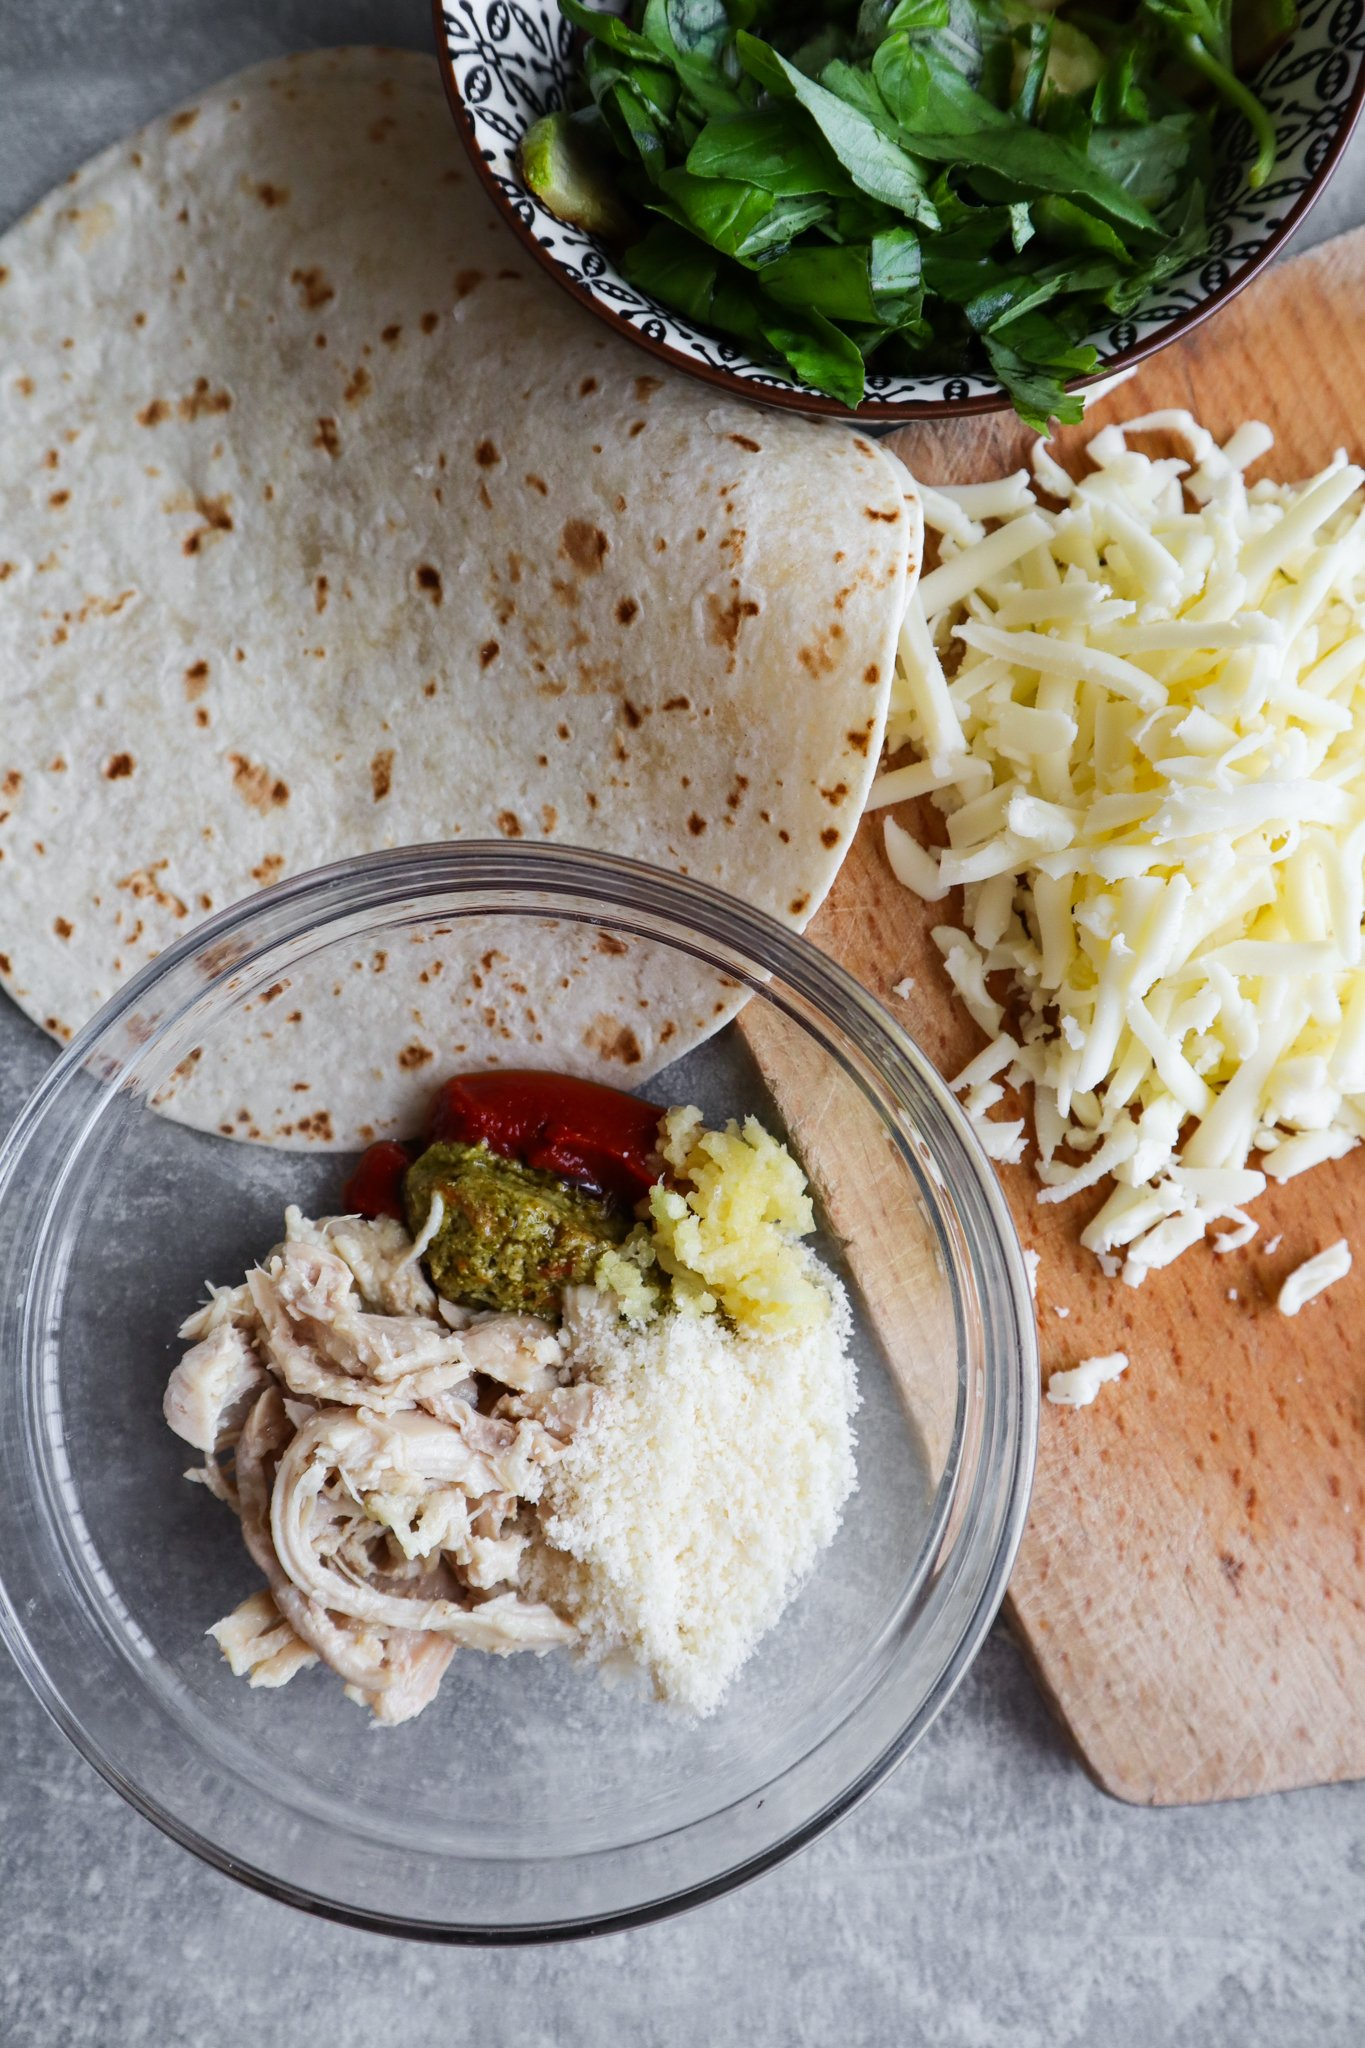 You'll love these amazing parmesan pesto chicken wraps. Ready in 15 minutes, this is such a tasty and easy lunch idea!